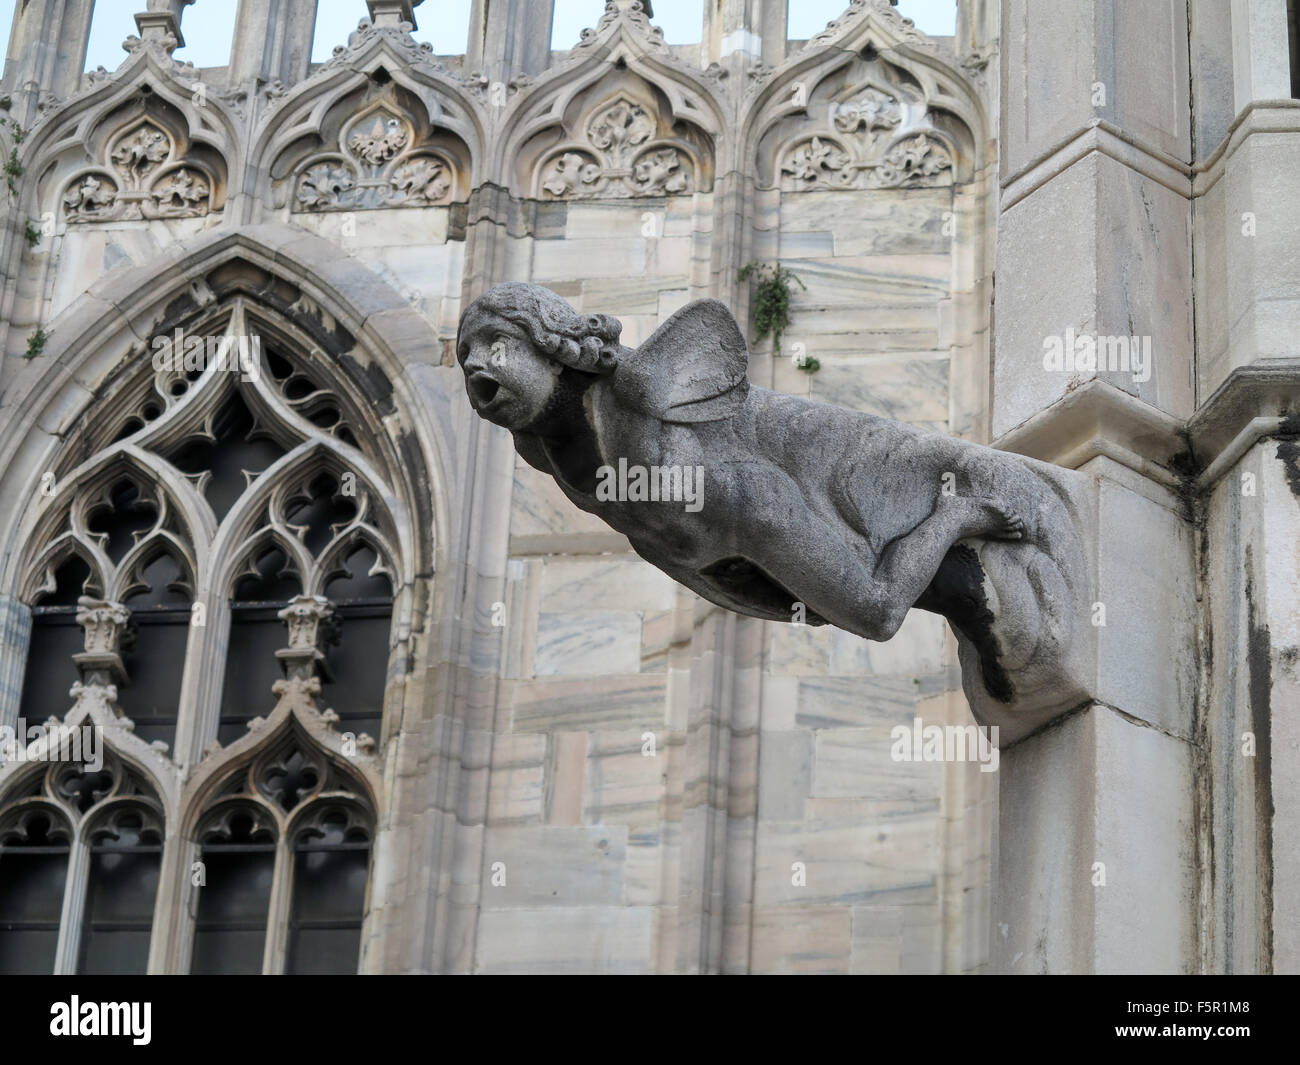 The gothic sculpture architecture details of milan